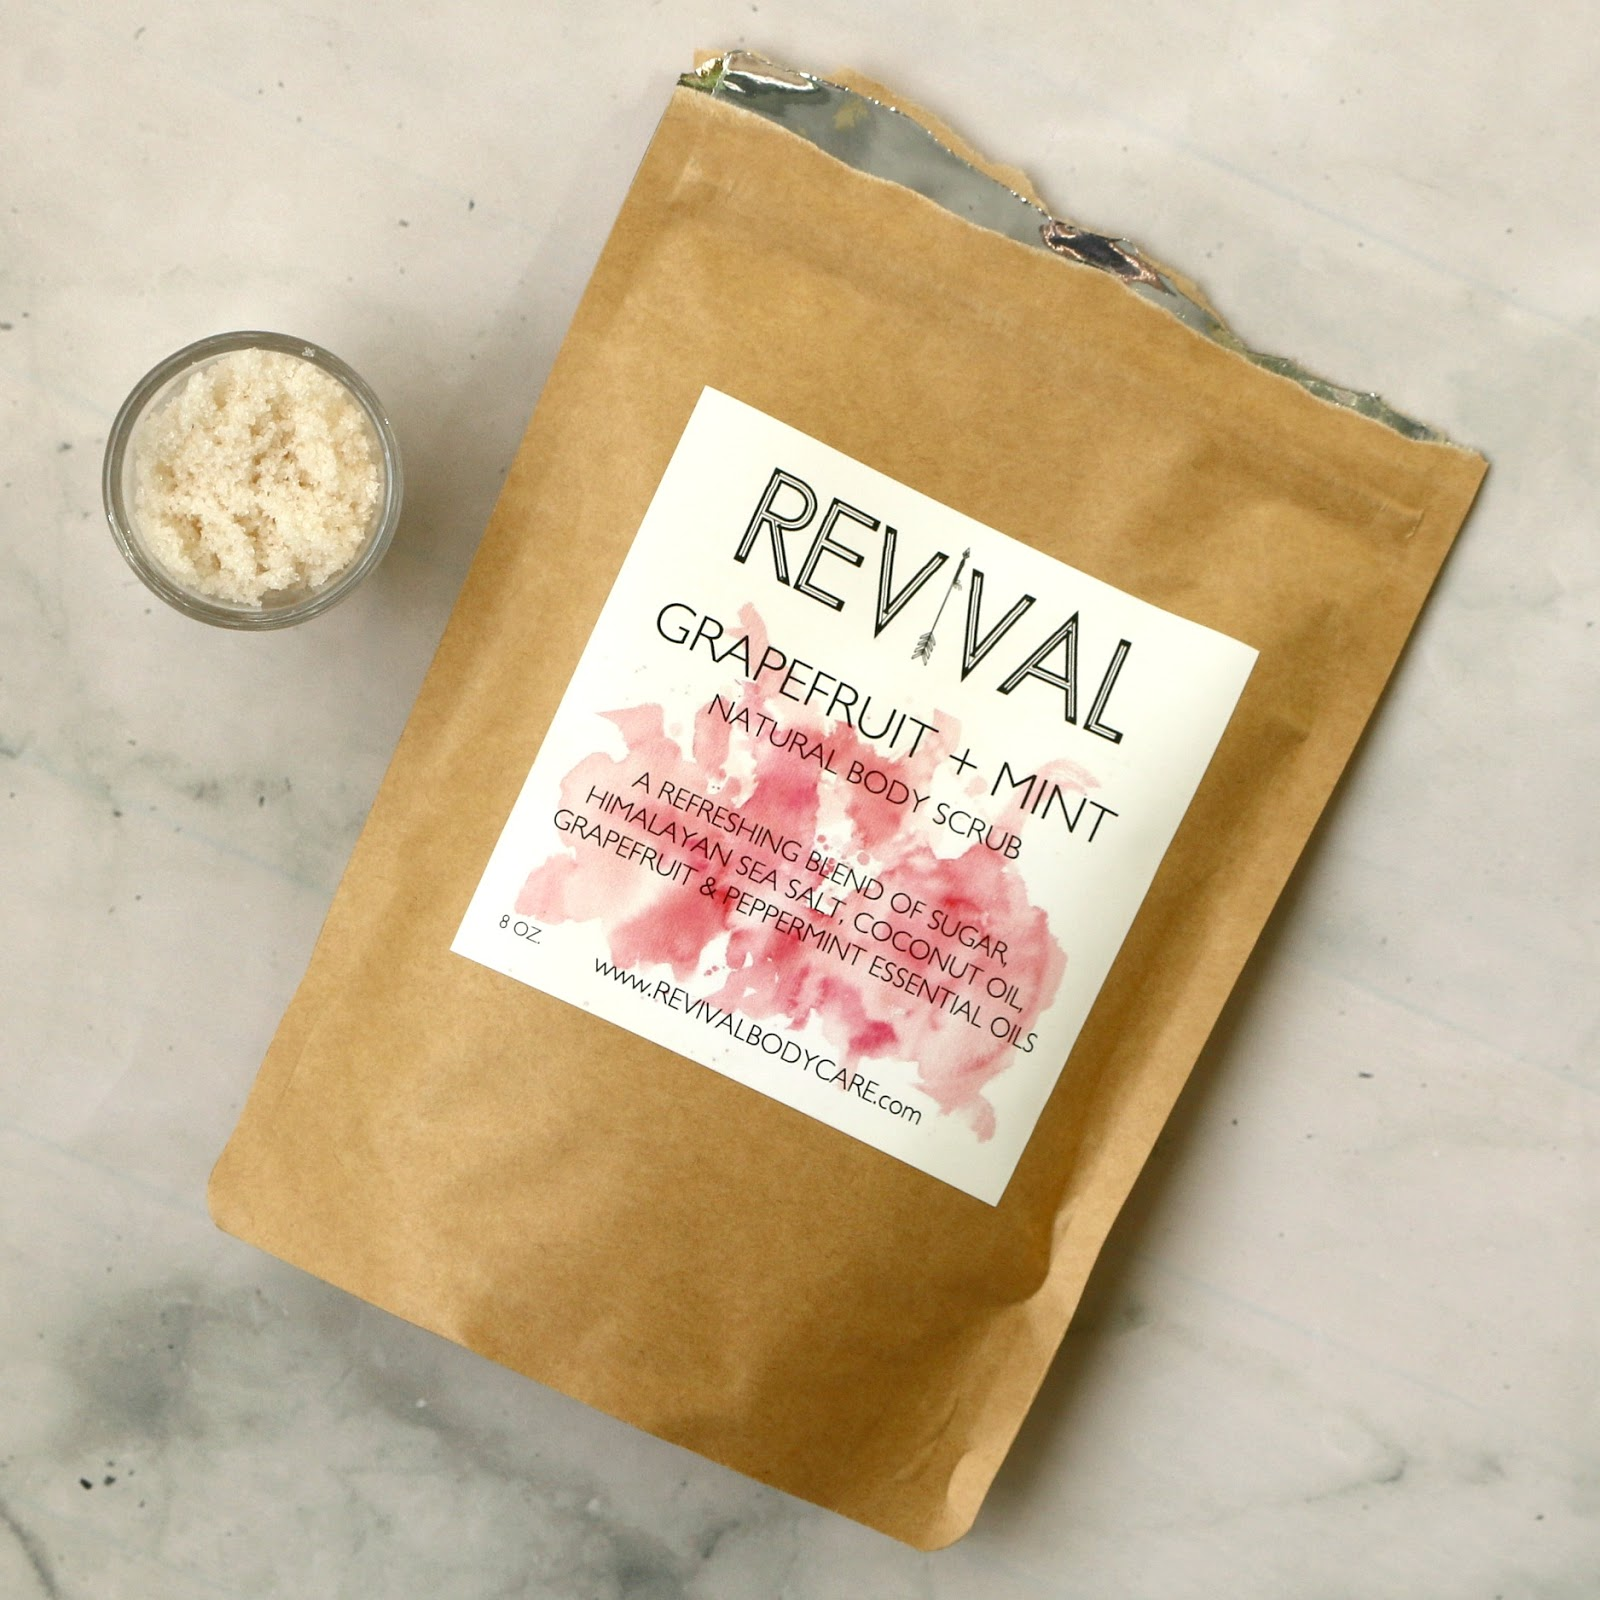 Revival Body Care Grapefruit Mint Body Scrub